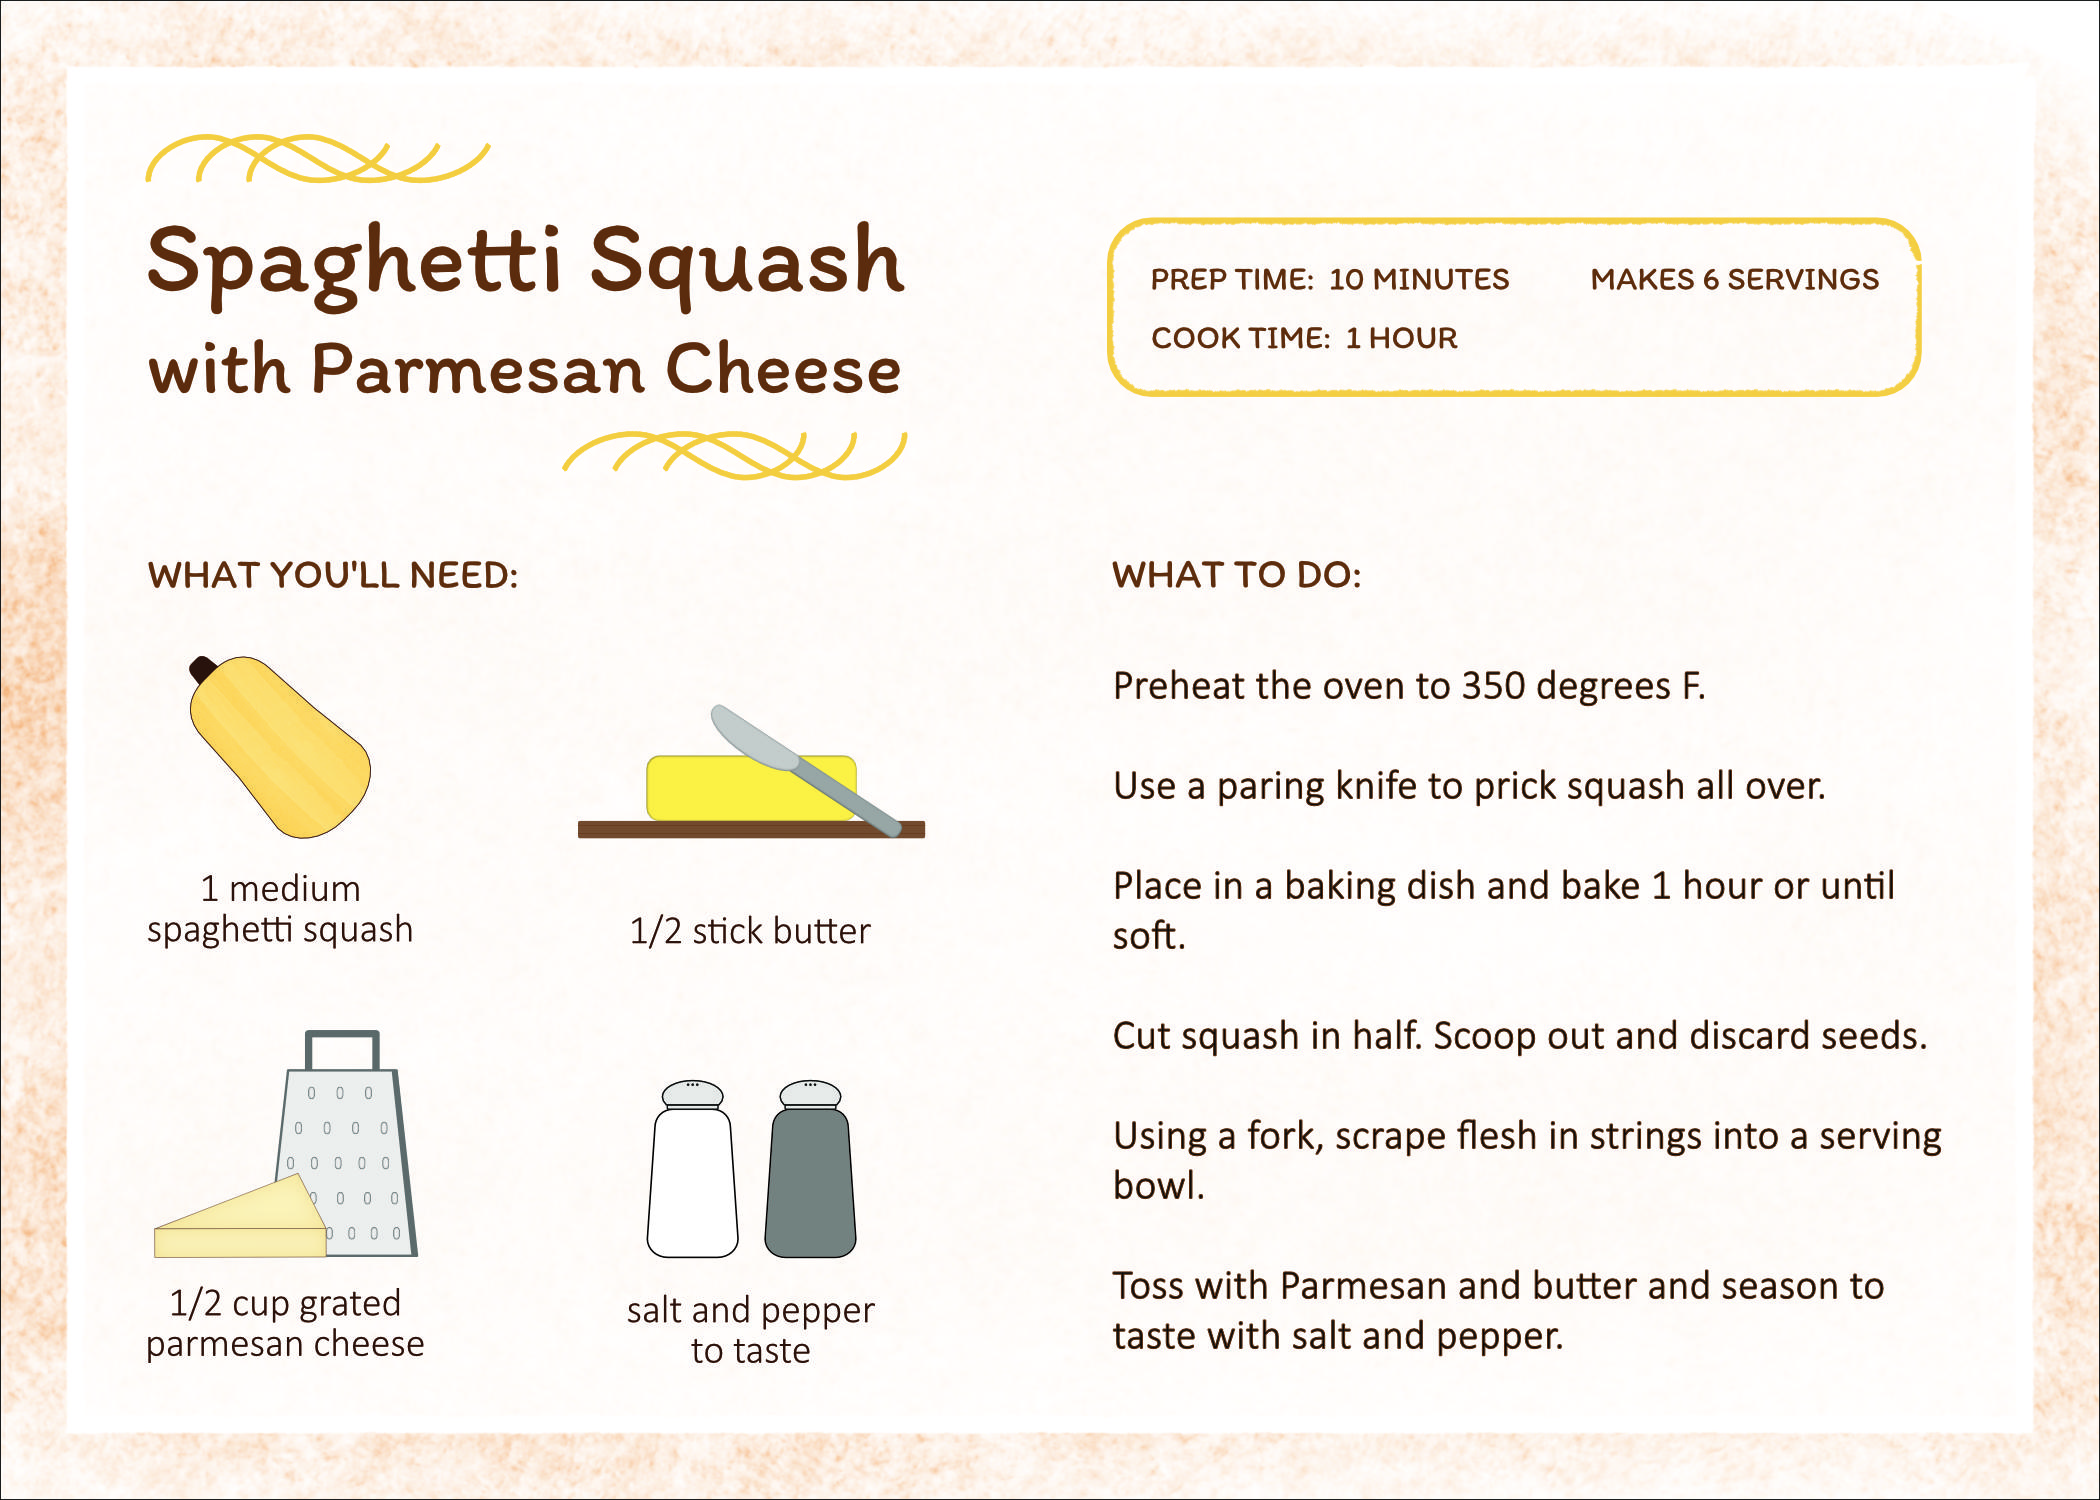 Spaghetti Squash Recipe Card and icon design